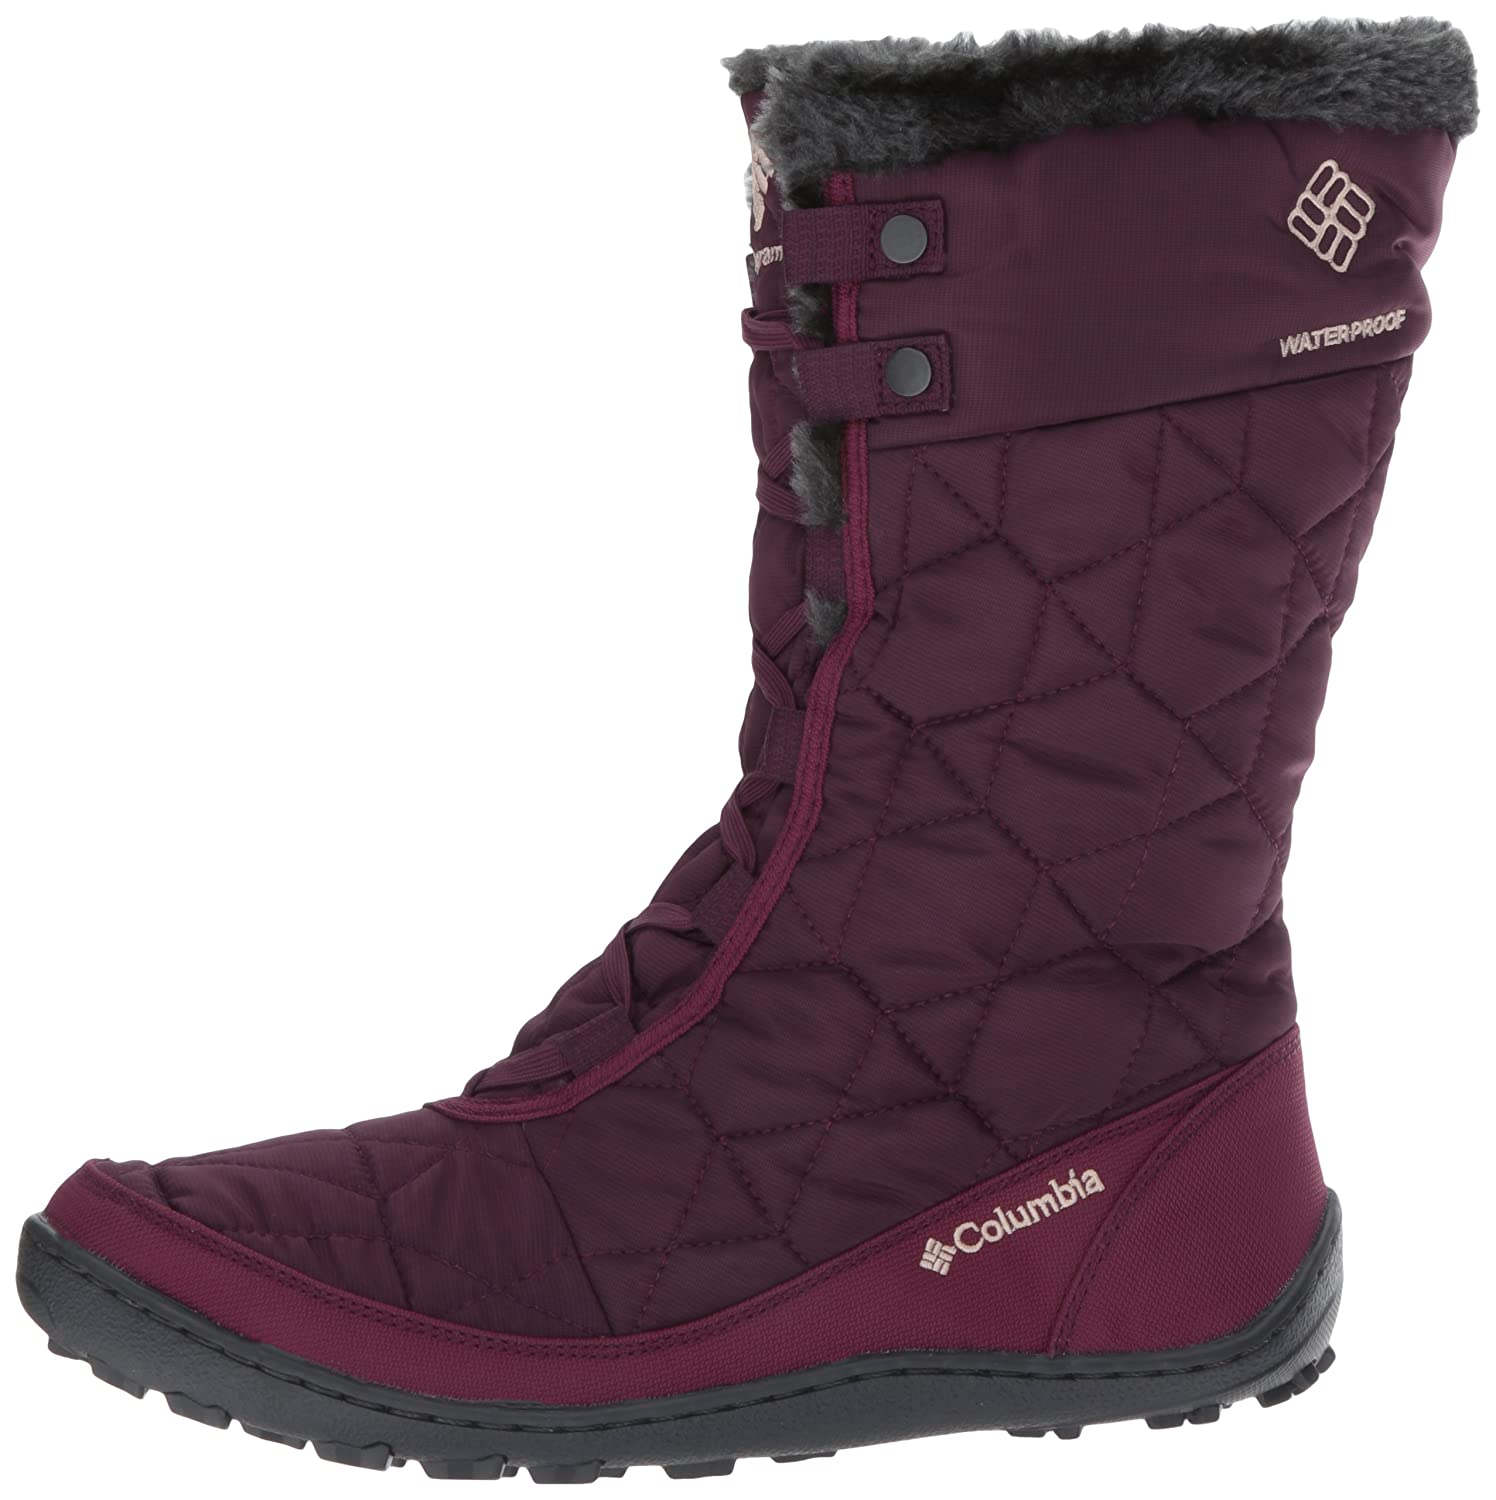 Columbia Women's Minx Mid II Omni-Heat Winter Boot B01MY03O7S 7.5 B(M) US|Purple Dahlia, Ancient Fossil